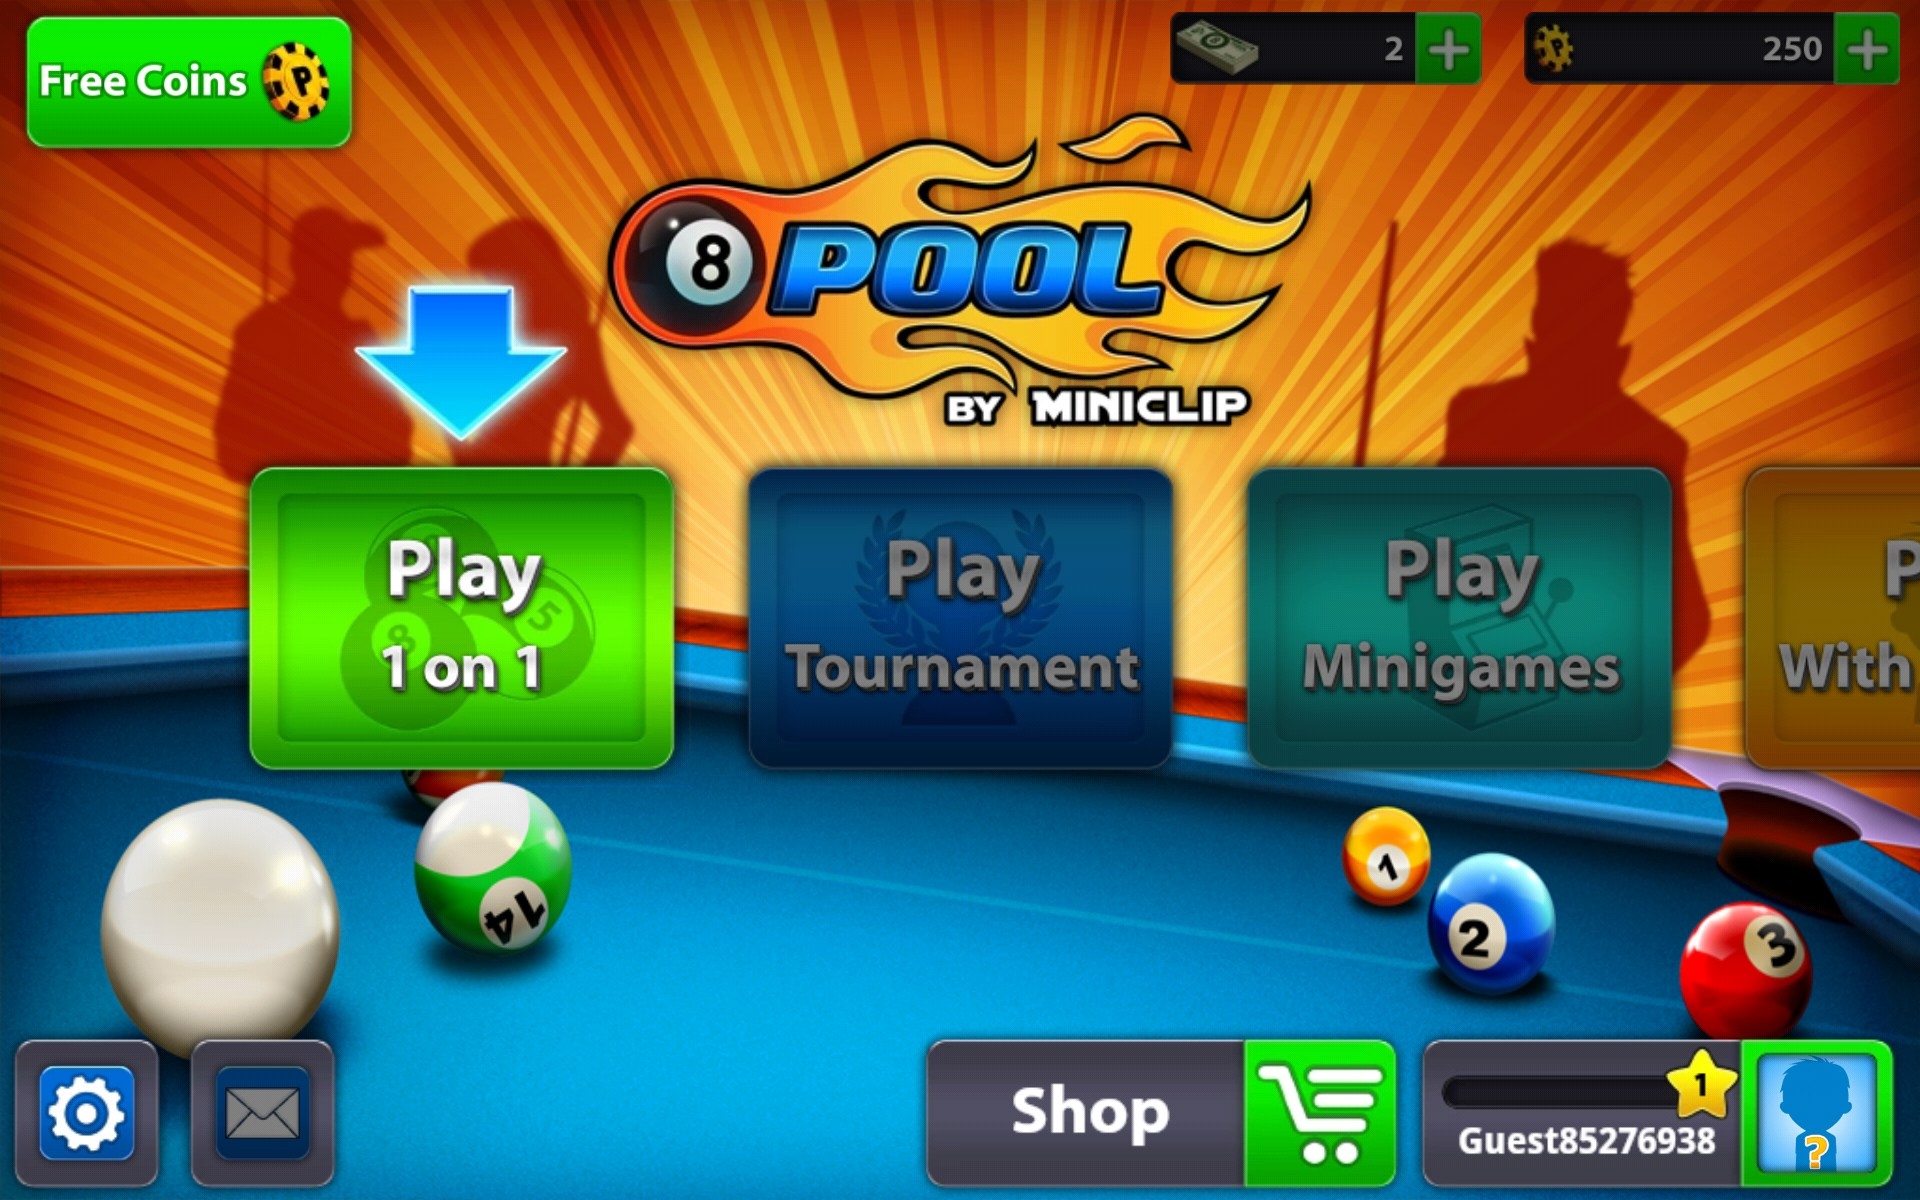 download pc pool 8ball